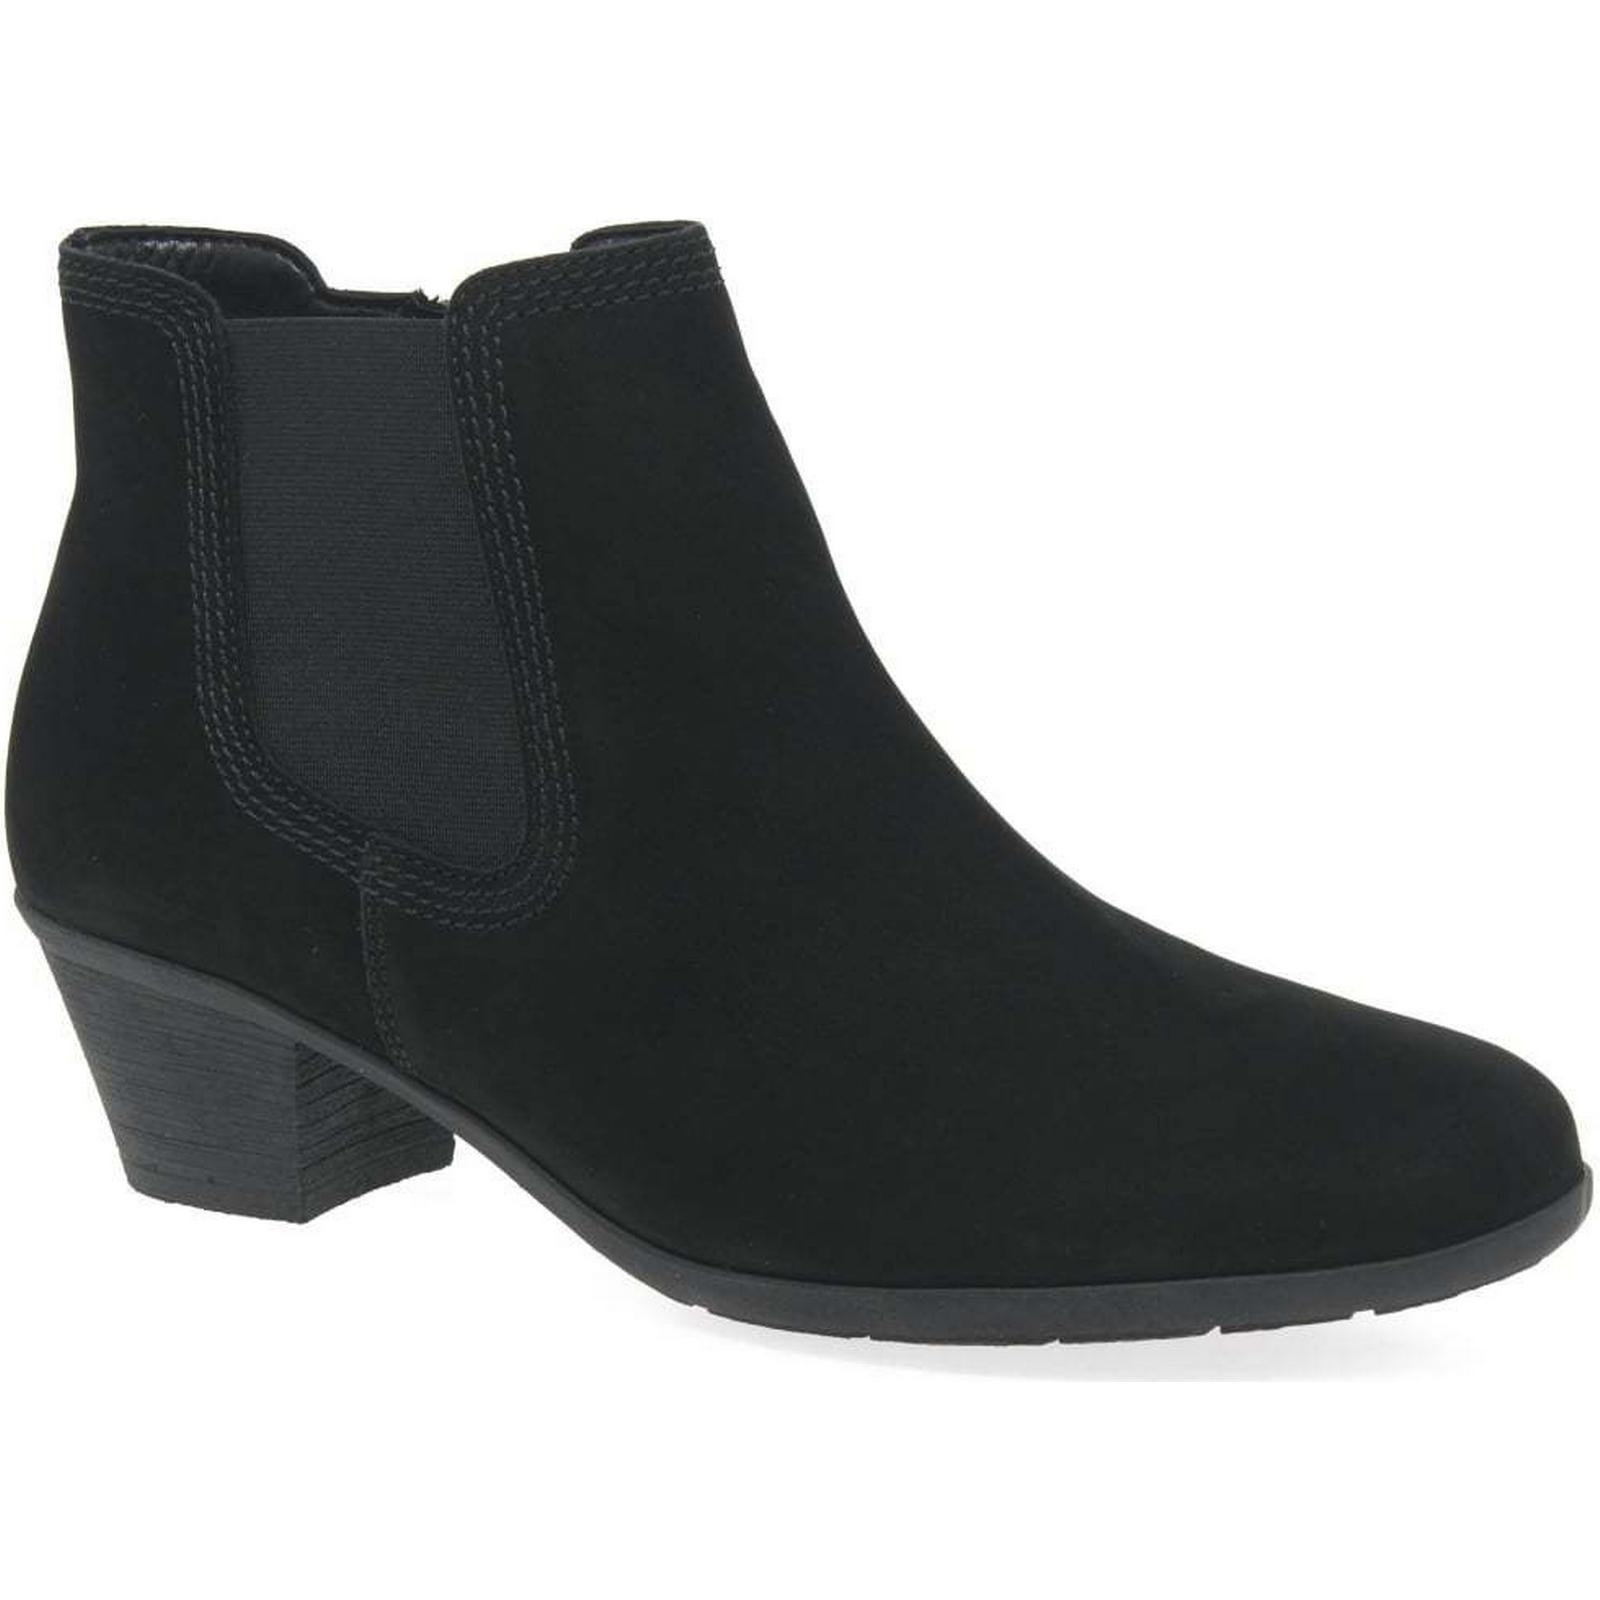 Gabor Hoy Colour: Womens Casual Chelsea Boots Colour: Hoy Black Nubuck, Size: 4.5 d4211e